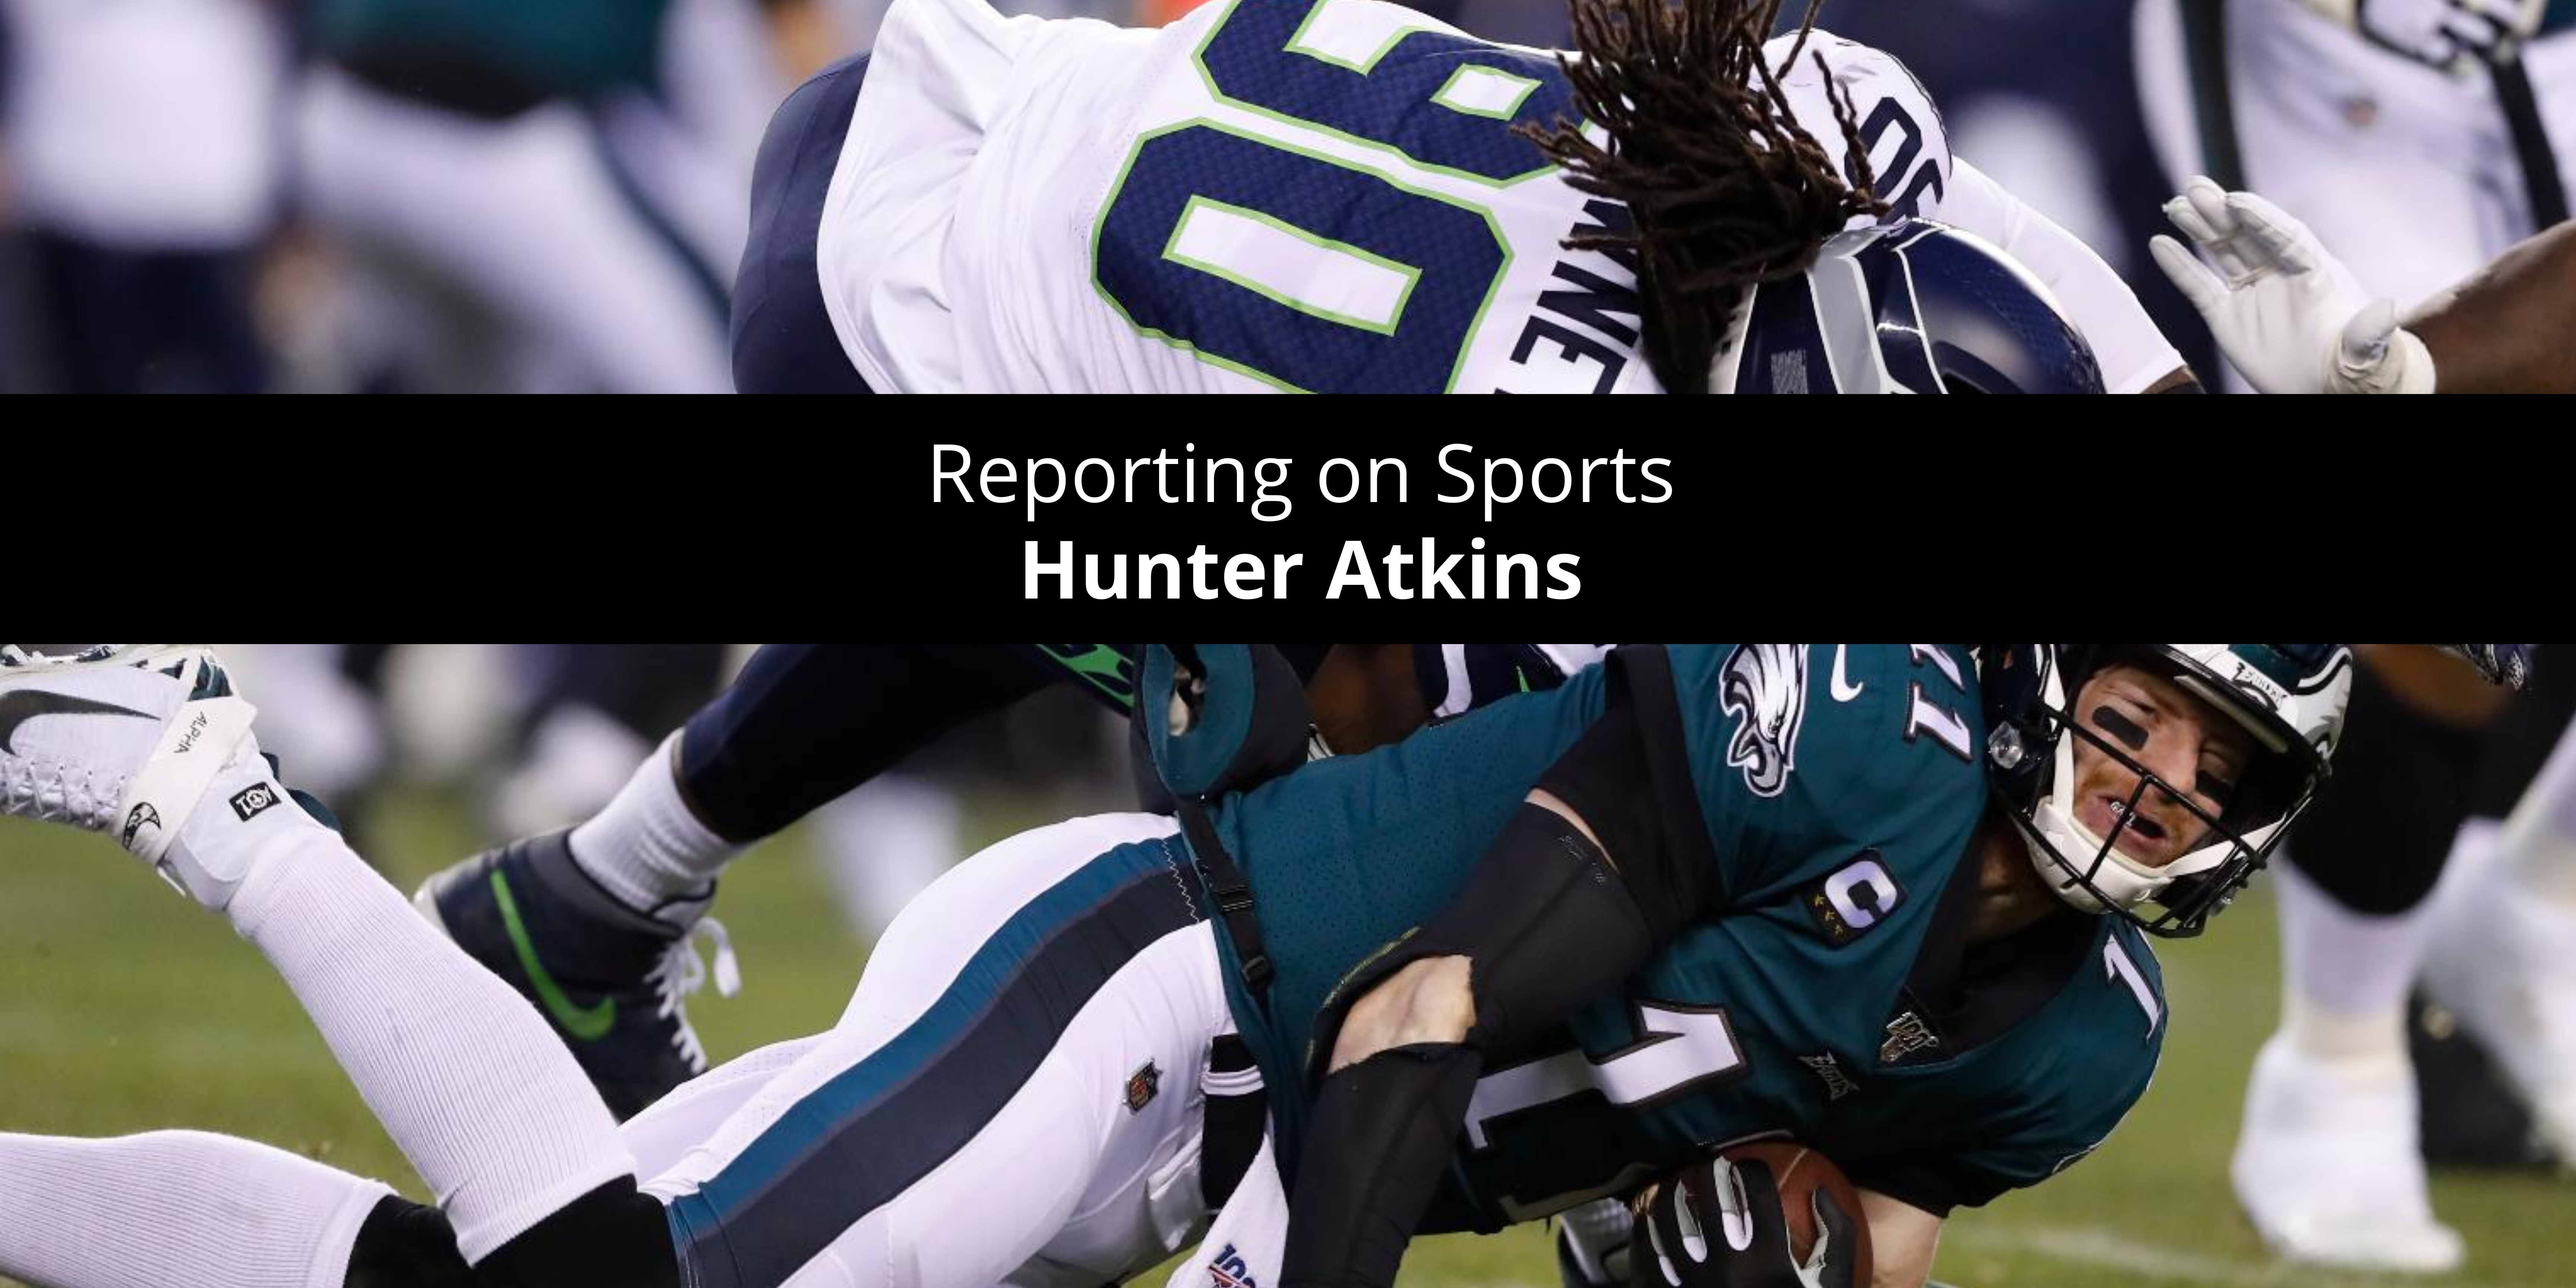 Hunter Atkins: Reporting on Sports